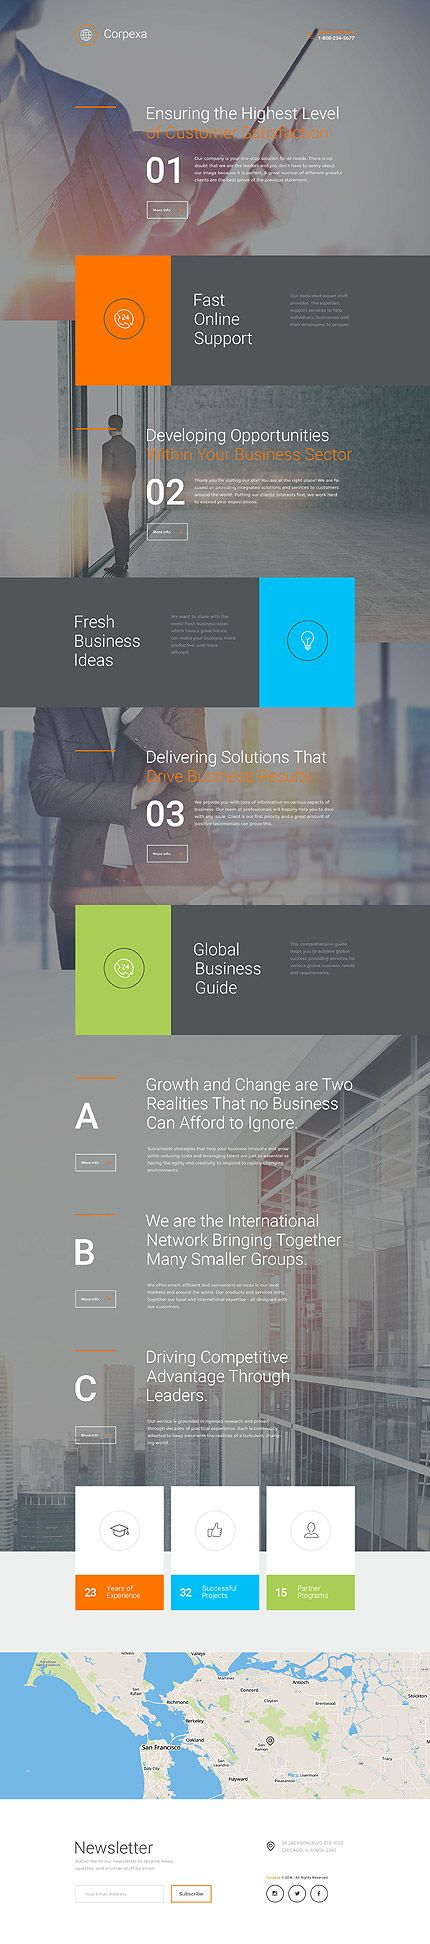 3690 best web design images on pinterest website designs web template 58222 corpexa business responsive landing page template cheaphphosting Image collections